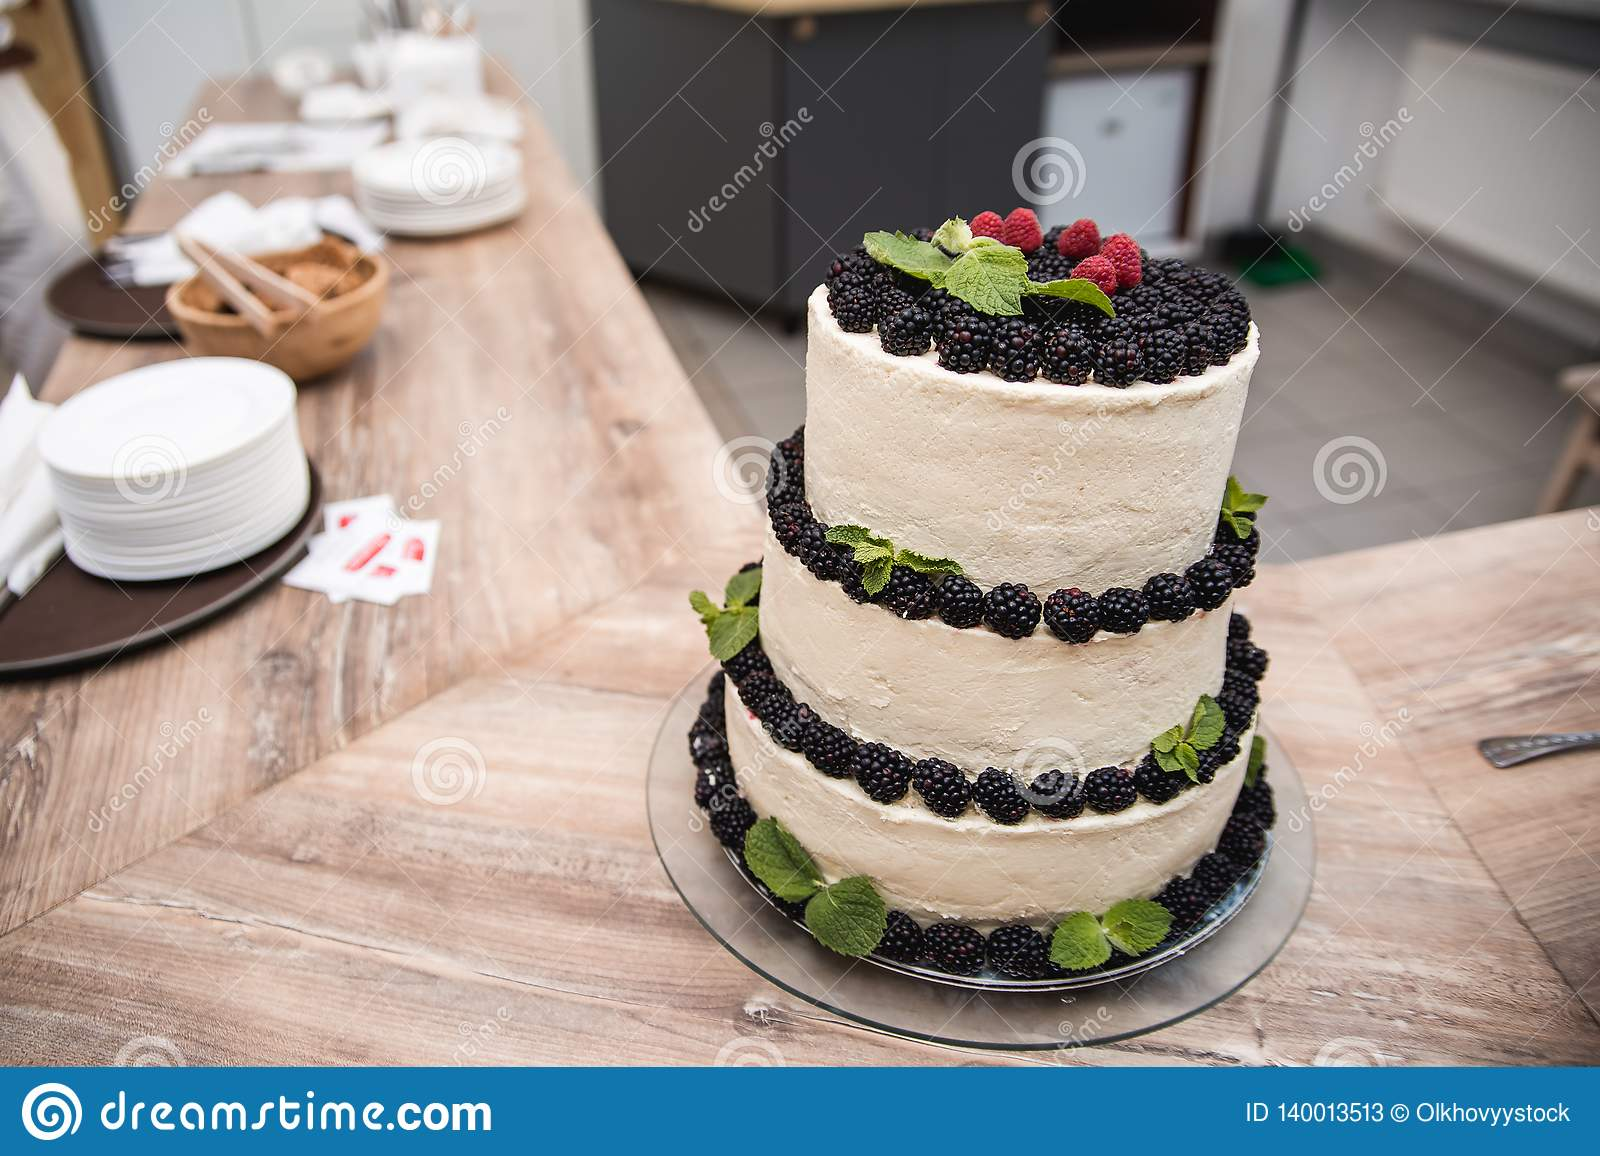 Naked wedding cake decorated with red berries and a dusting of icing sugar